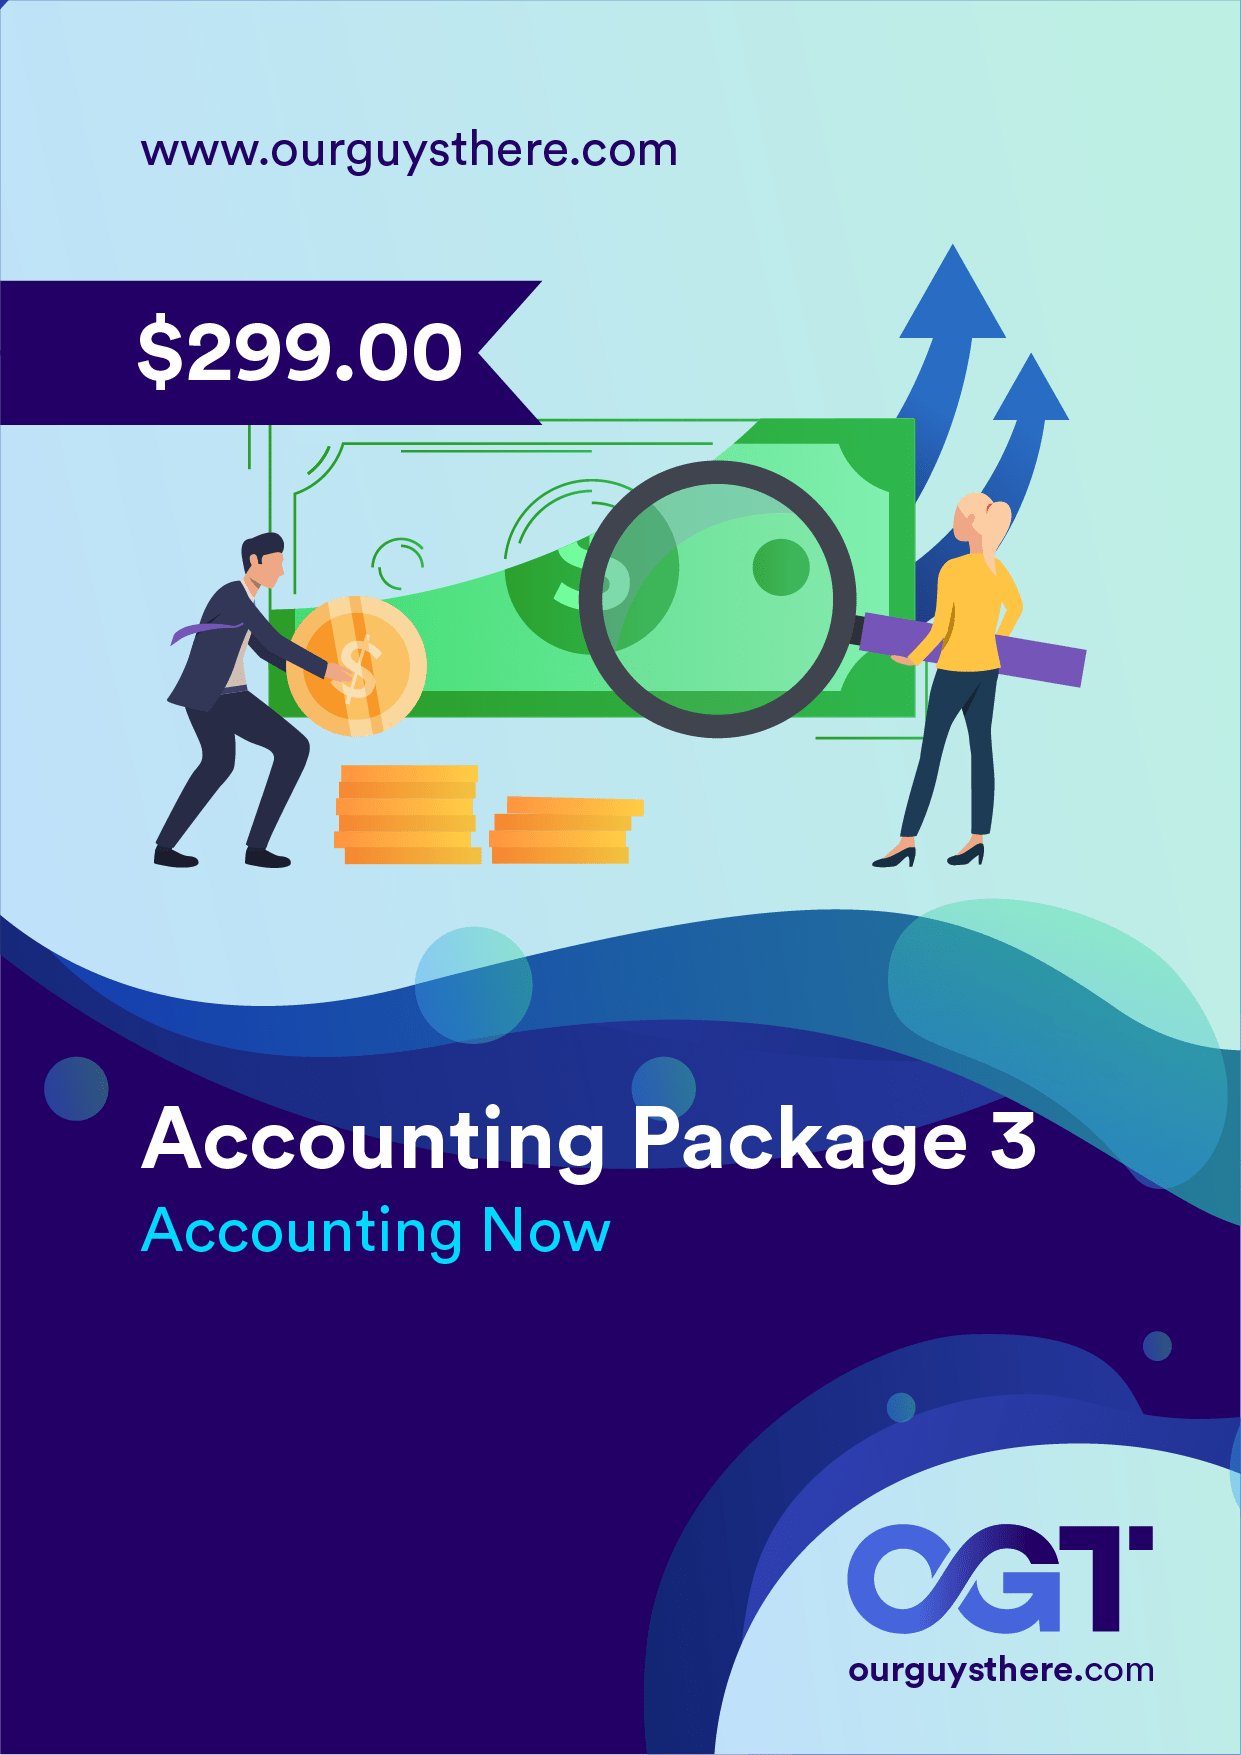 Accounting Package 3